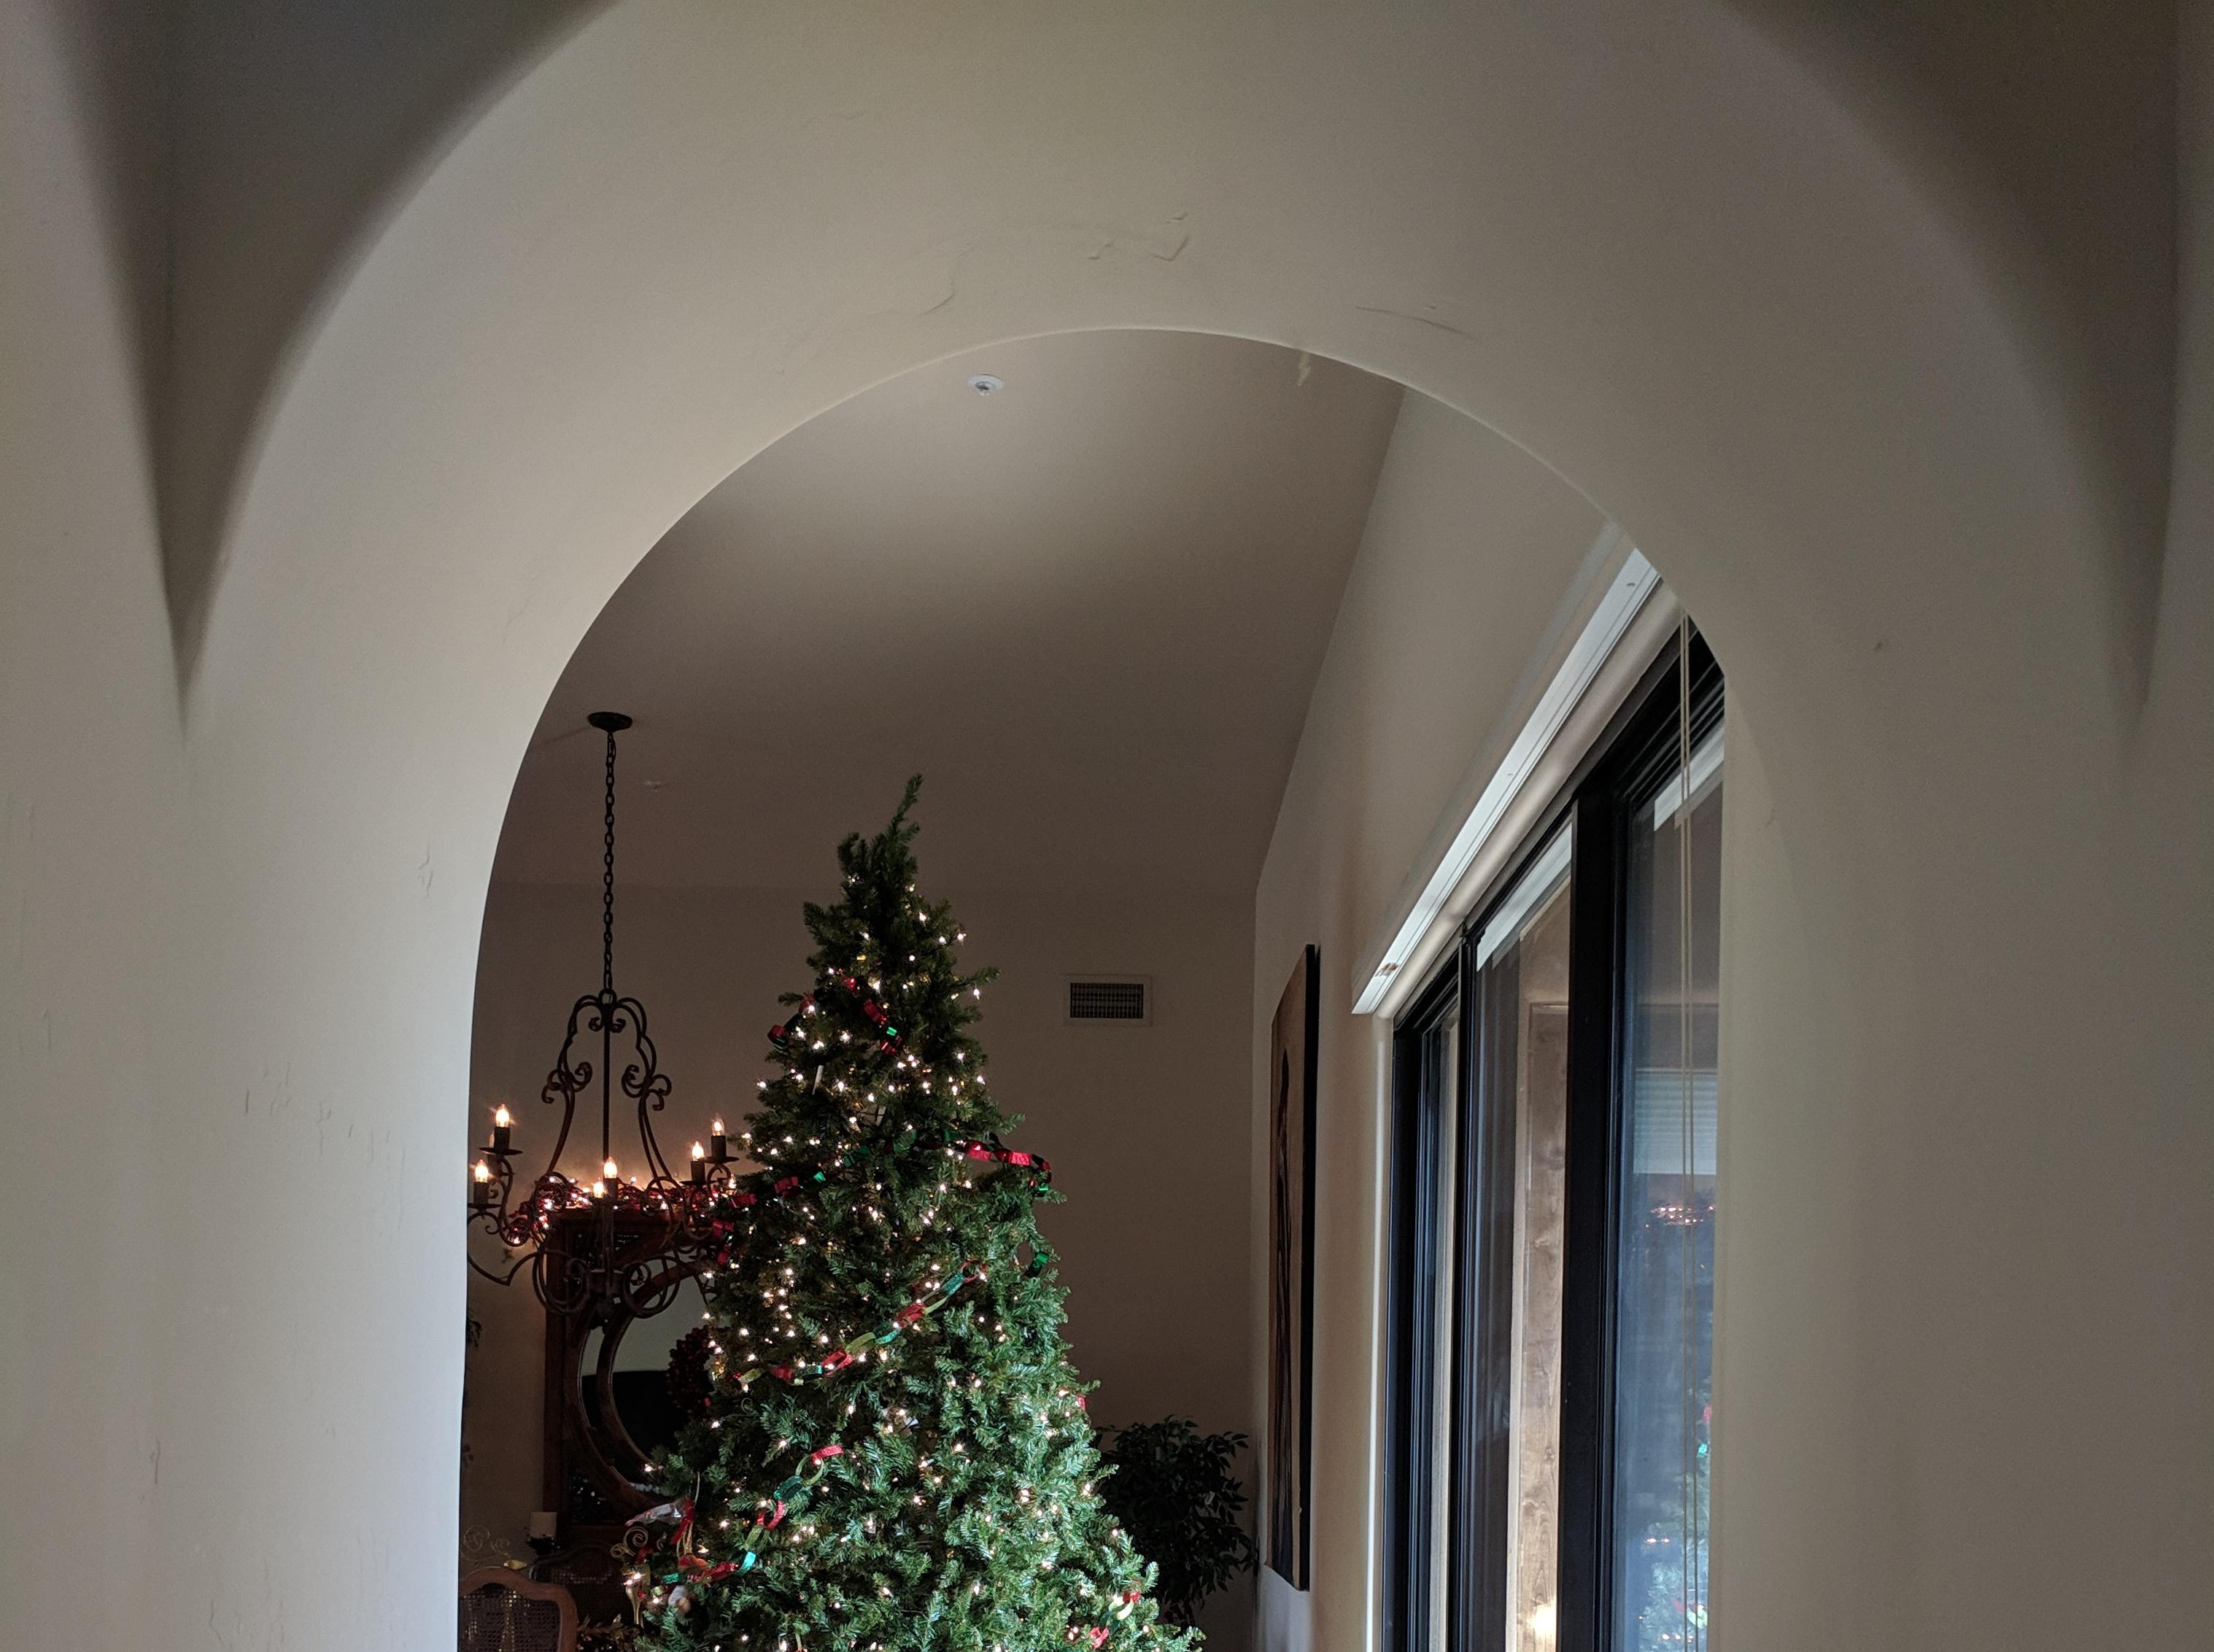 The Reaveses' home features a number of recessed ceiling and arched hallways, leading to its Santa Fe feel.